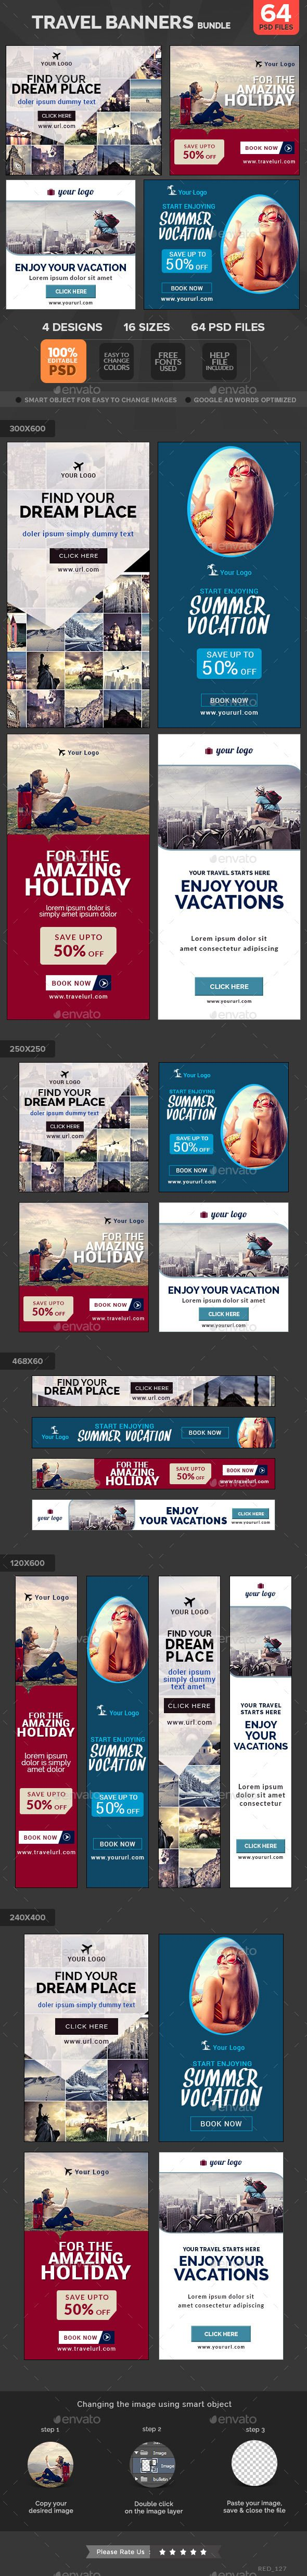 Travel Banners Bundle - 4 Sets - Banners & Ads Web Template PSD. Download here: http://graphicriver.net/item/travel-banners-bundle-4-sets/11259844?s_rank=1213&ref=yinkira